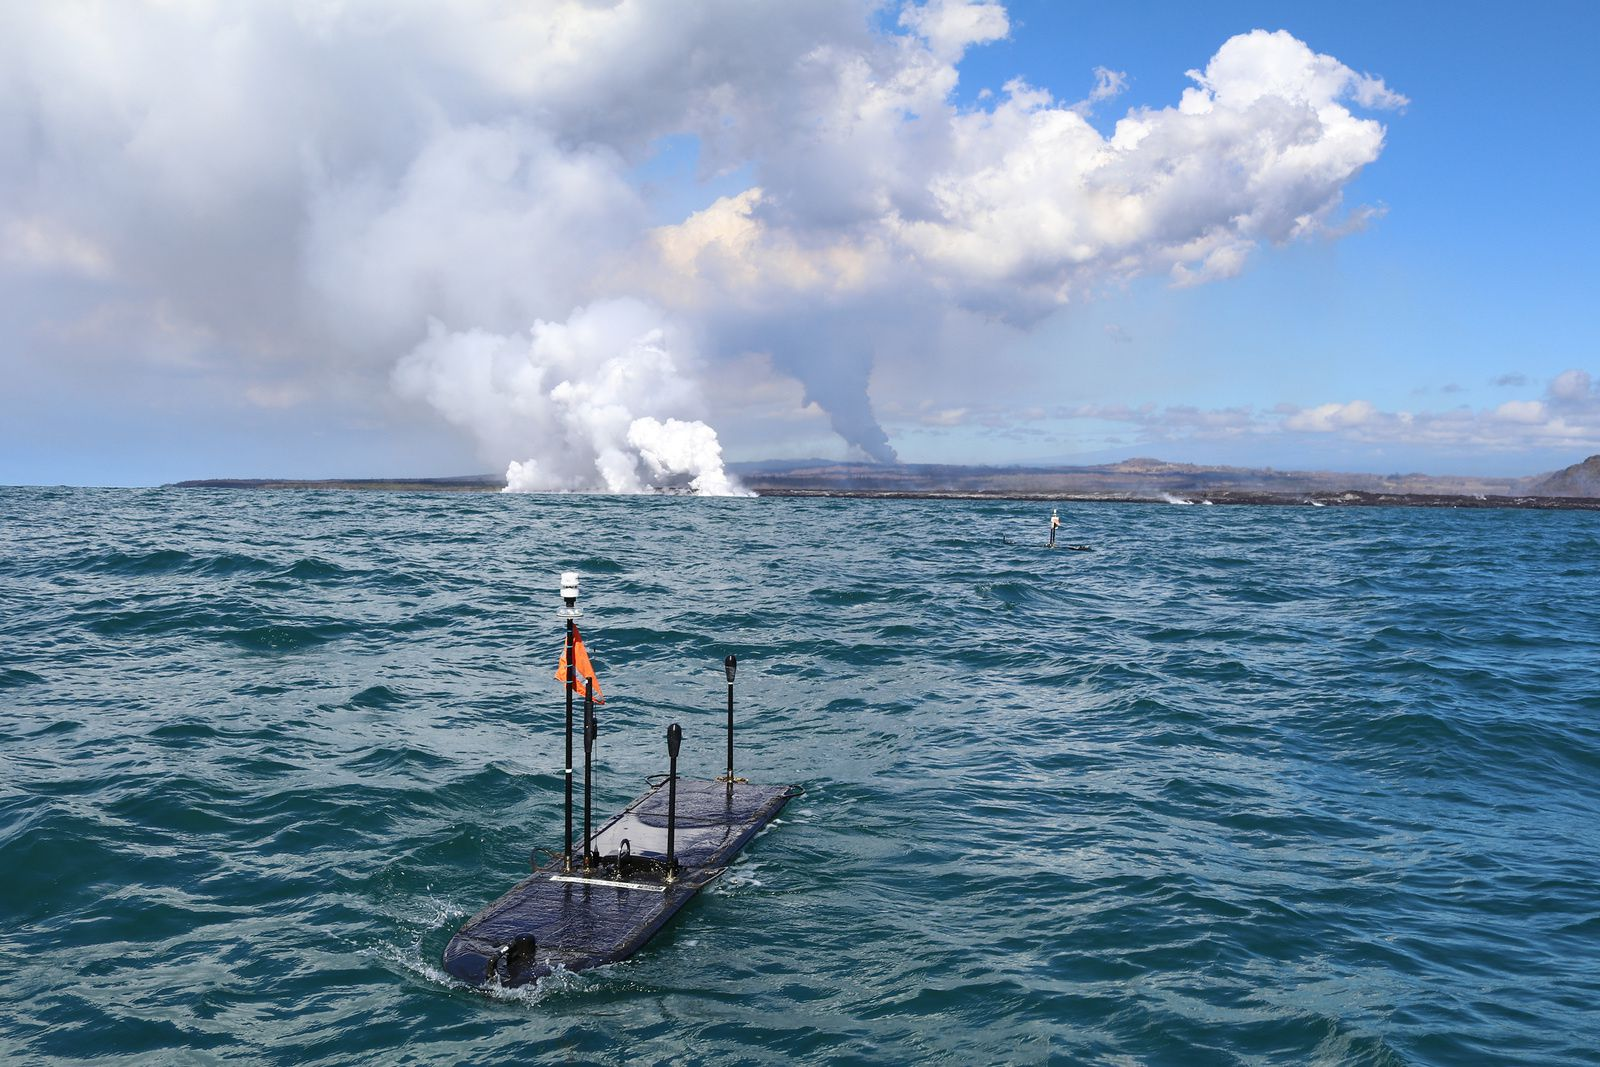 Kilauea East Rift Zone - two robotic wave surfers were deployed 300 m away. entries at sea, off Kapoho- picture 29.06.2018 / Liquid Robotics, A Boeing Company.